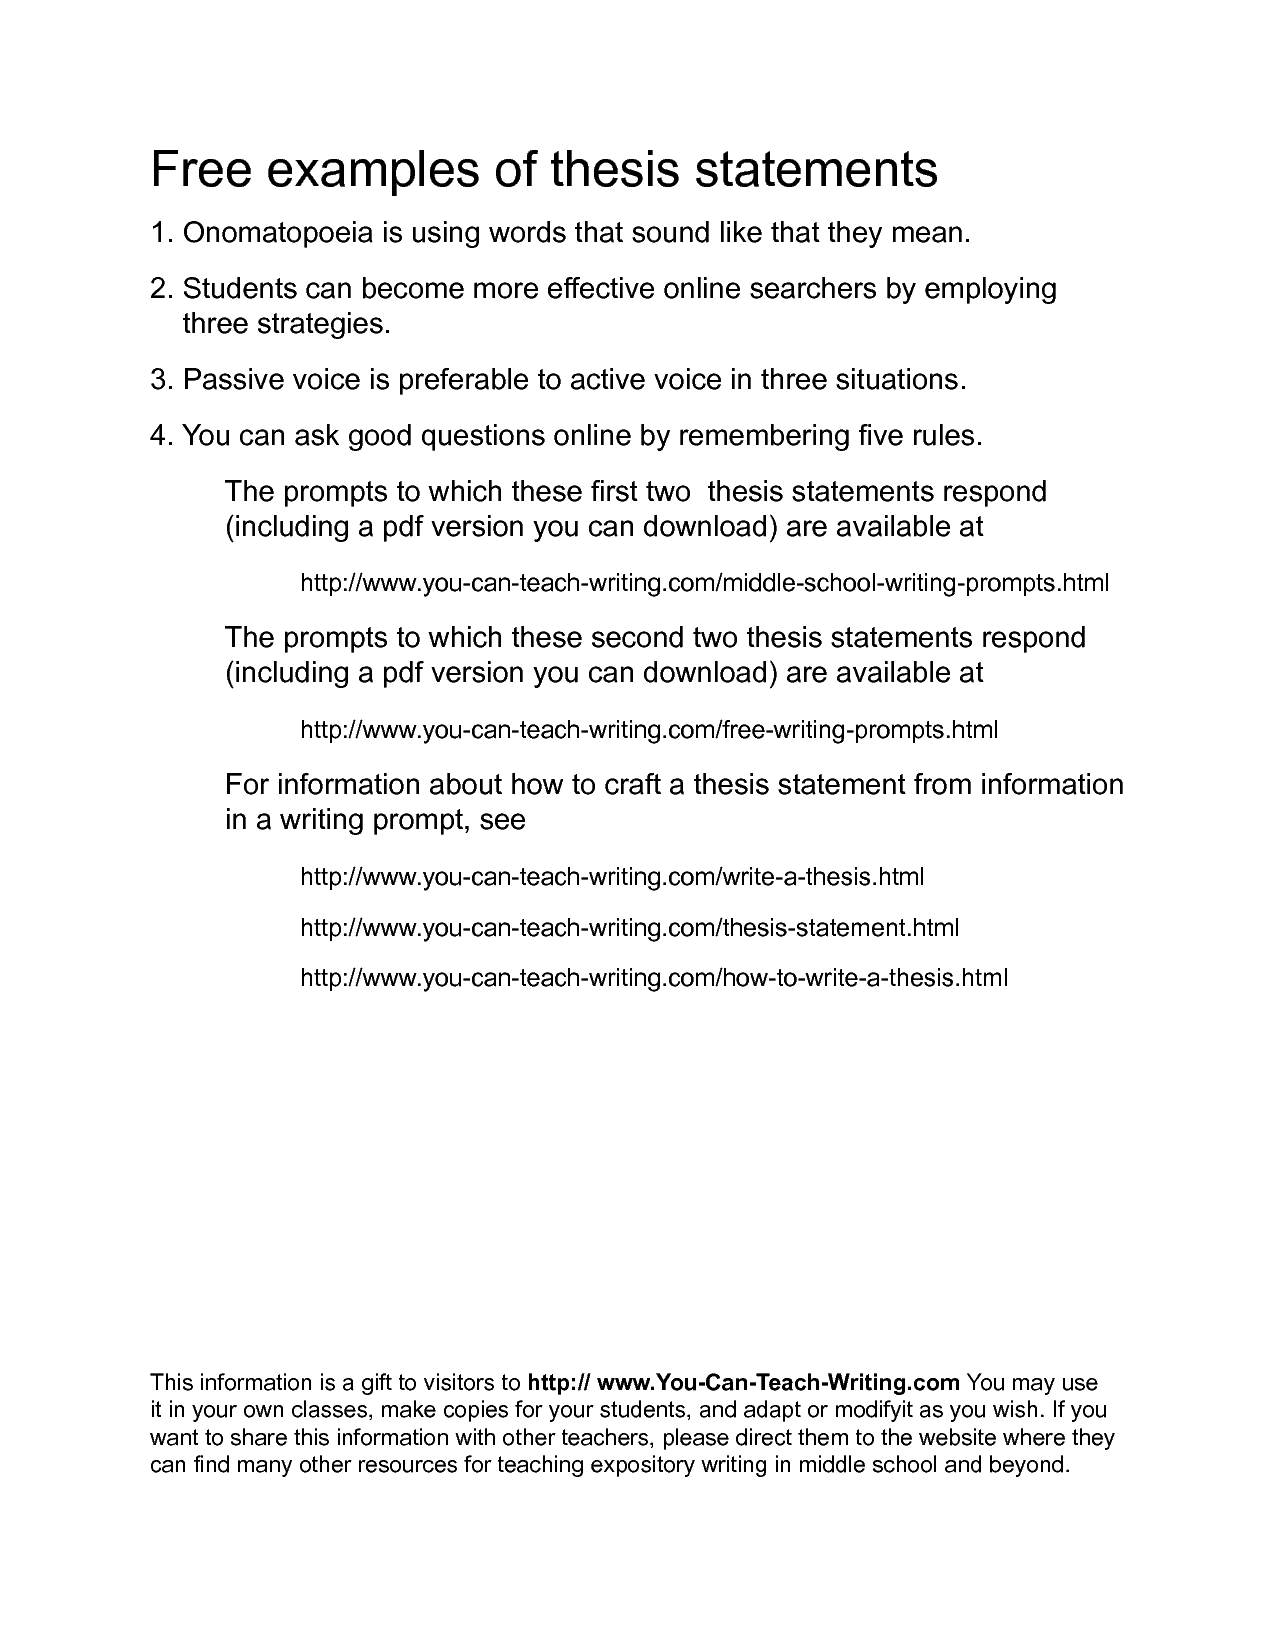 Essay Science And Religion  Proposal Essay Topic also Importance Of English Language Essay Purpose Of A Thesis Statement  Thesis  Thesis Statement  Diwali Essay In English